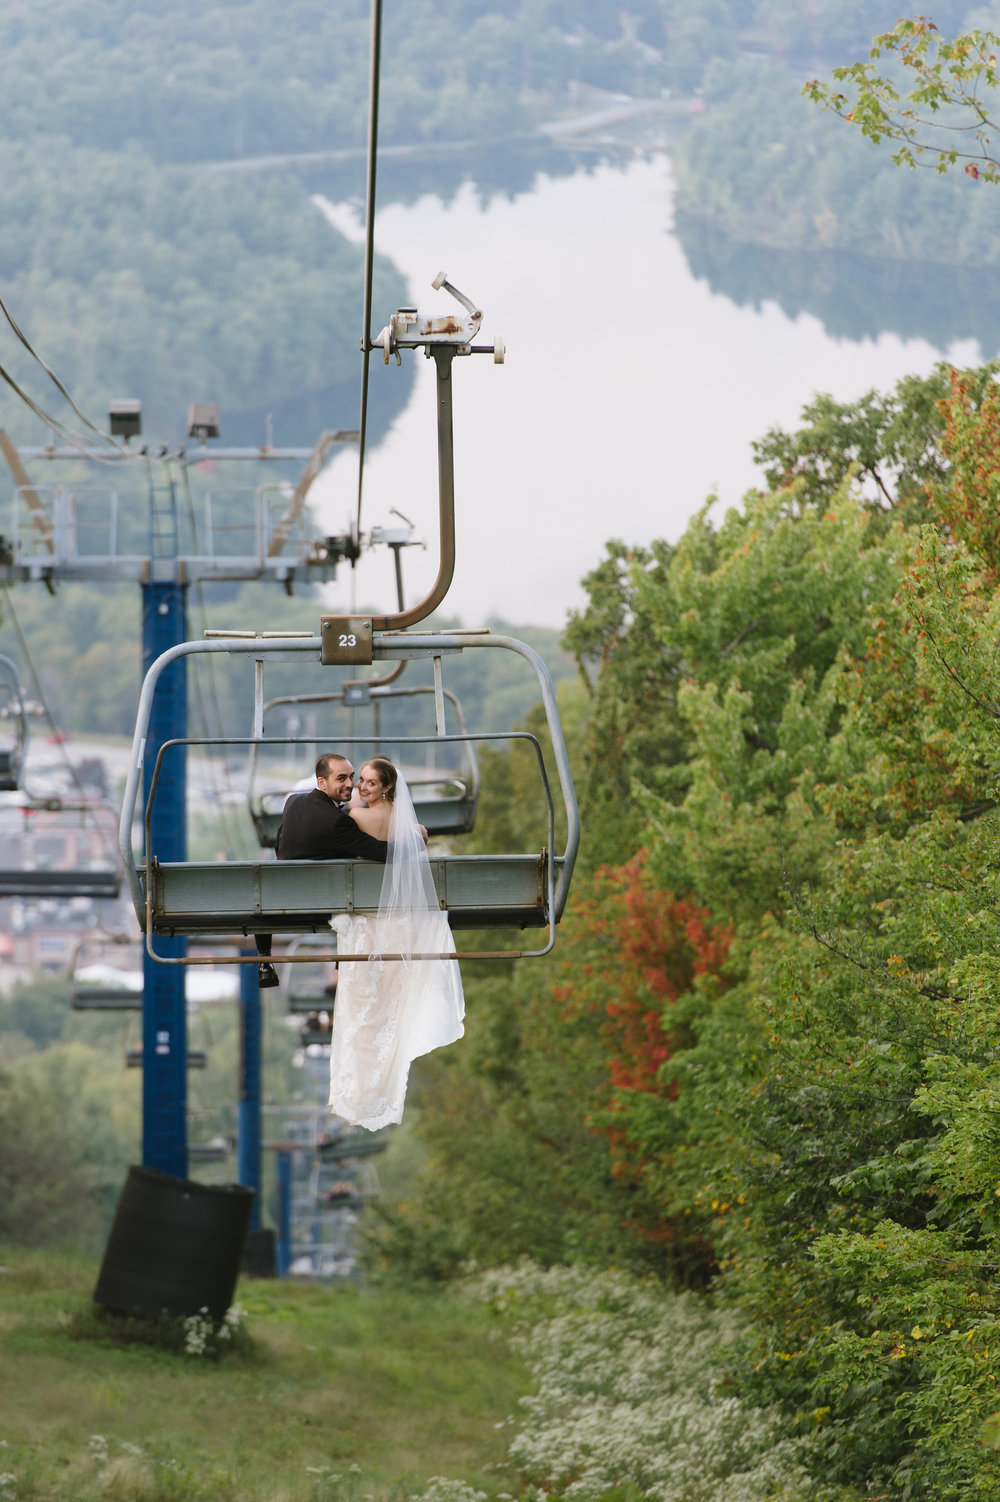 Bride and Groom ride the chairlift on their wedding day at Wachuett Mountain Ski Area